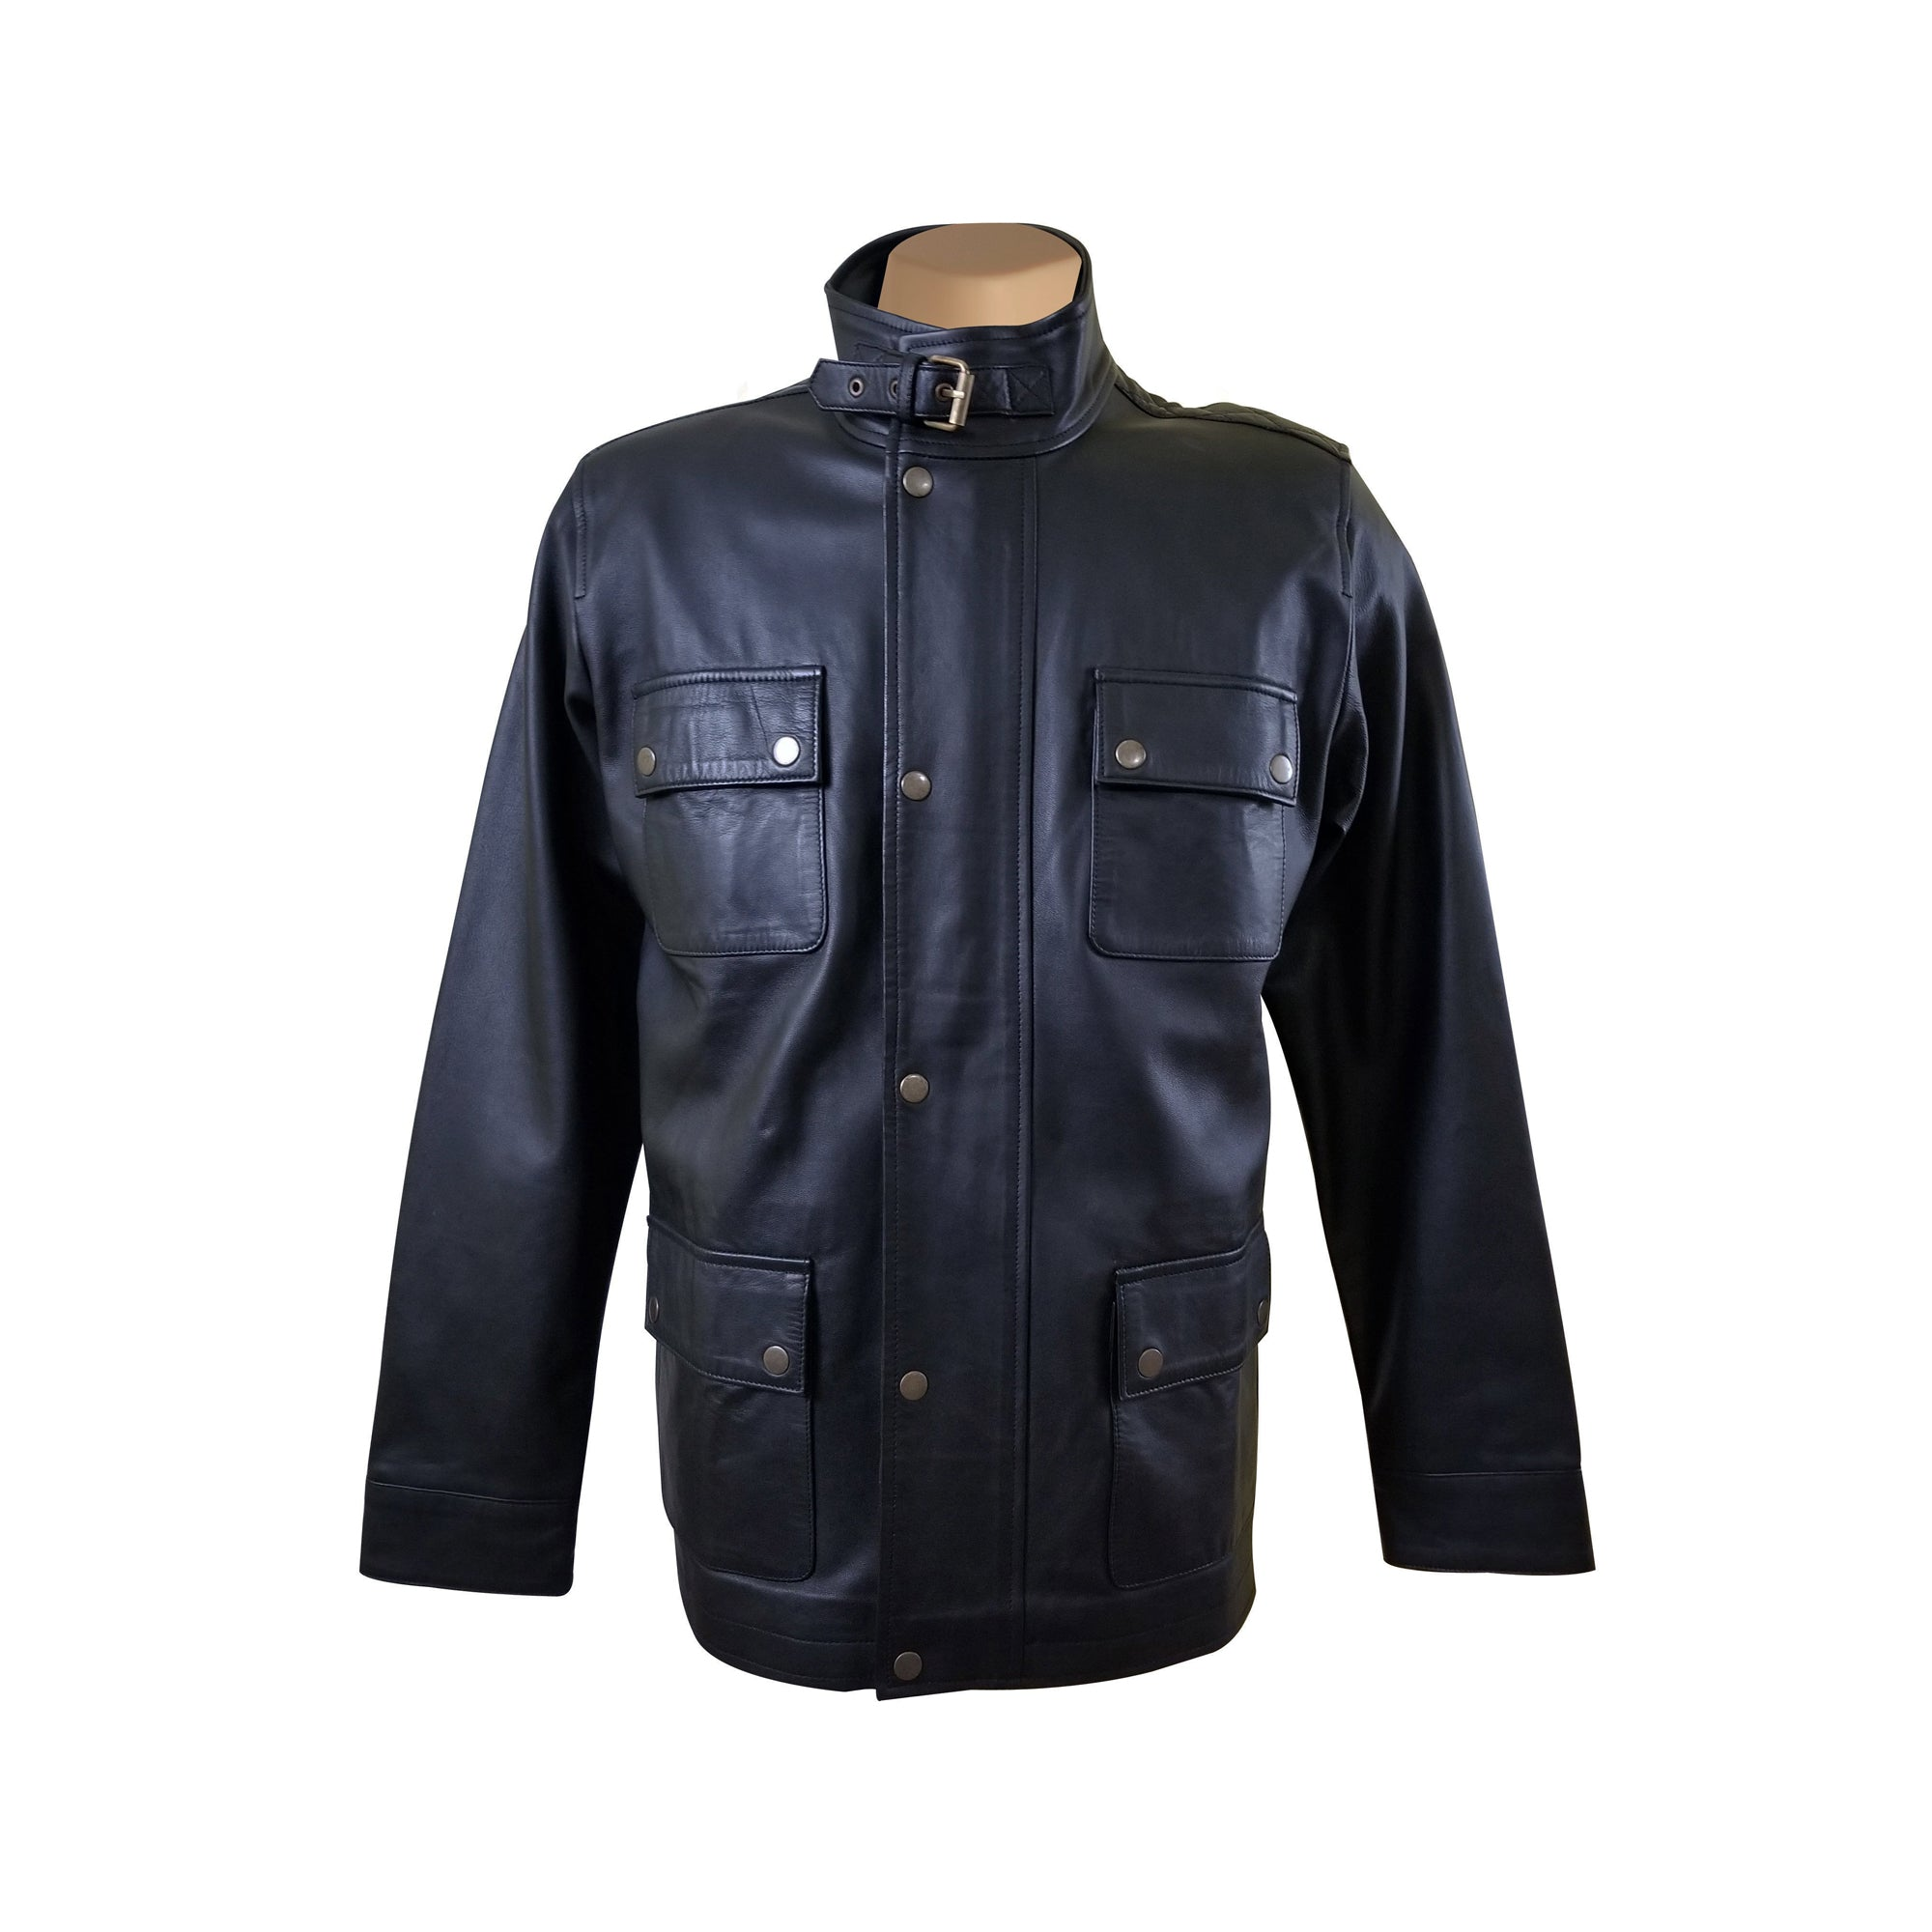 Mosley's leather jacket with collar belt